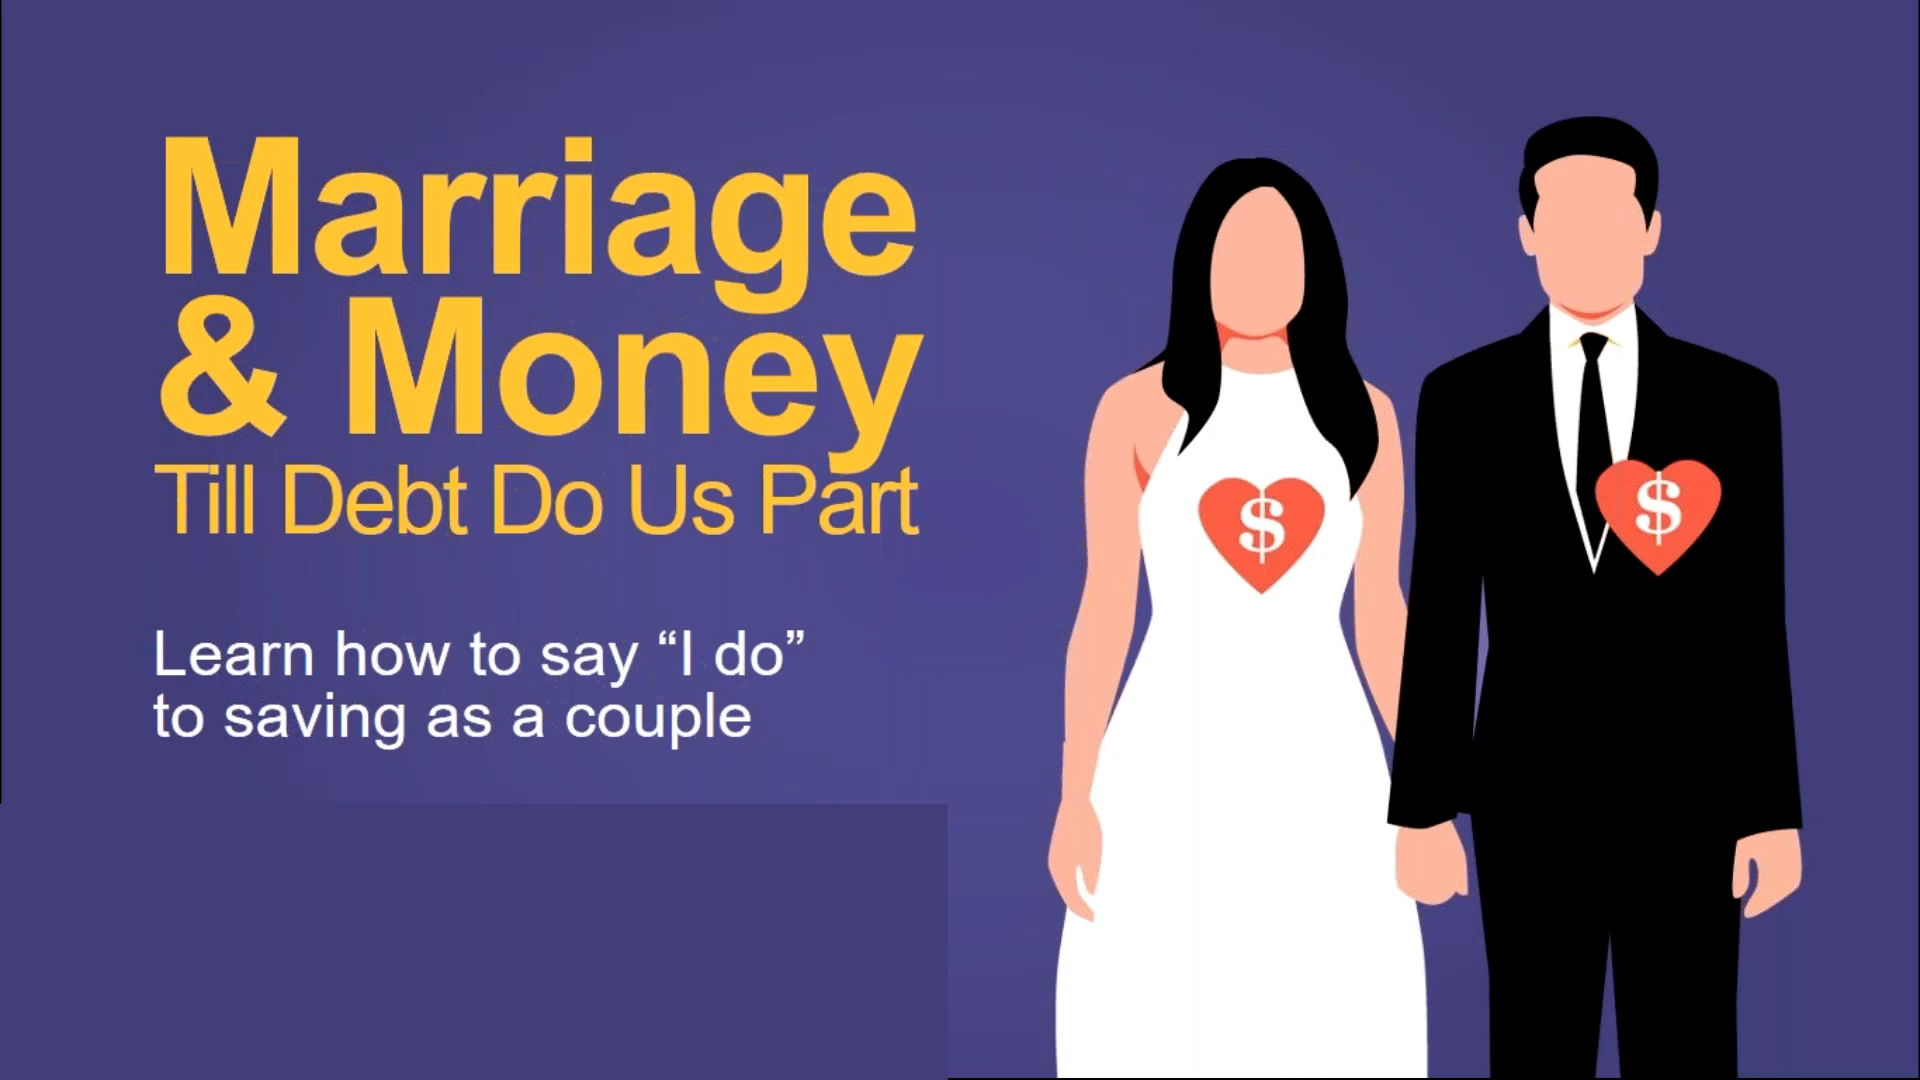 Marriage and Money: Till Debt Do Us Part